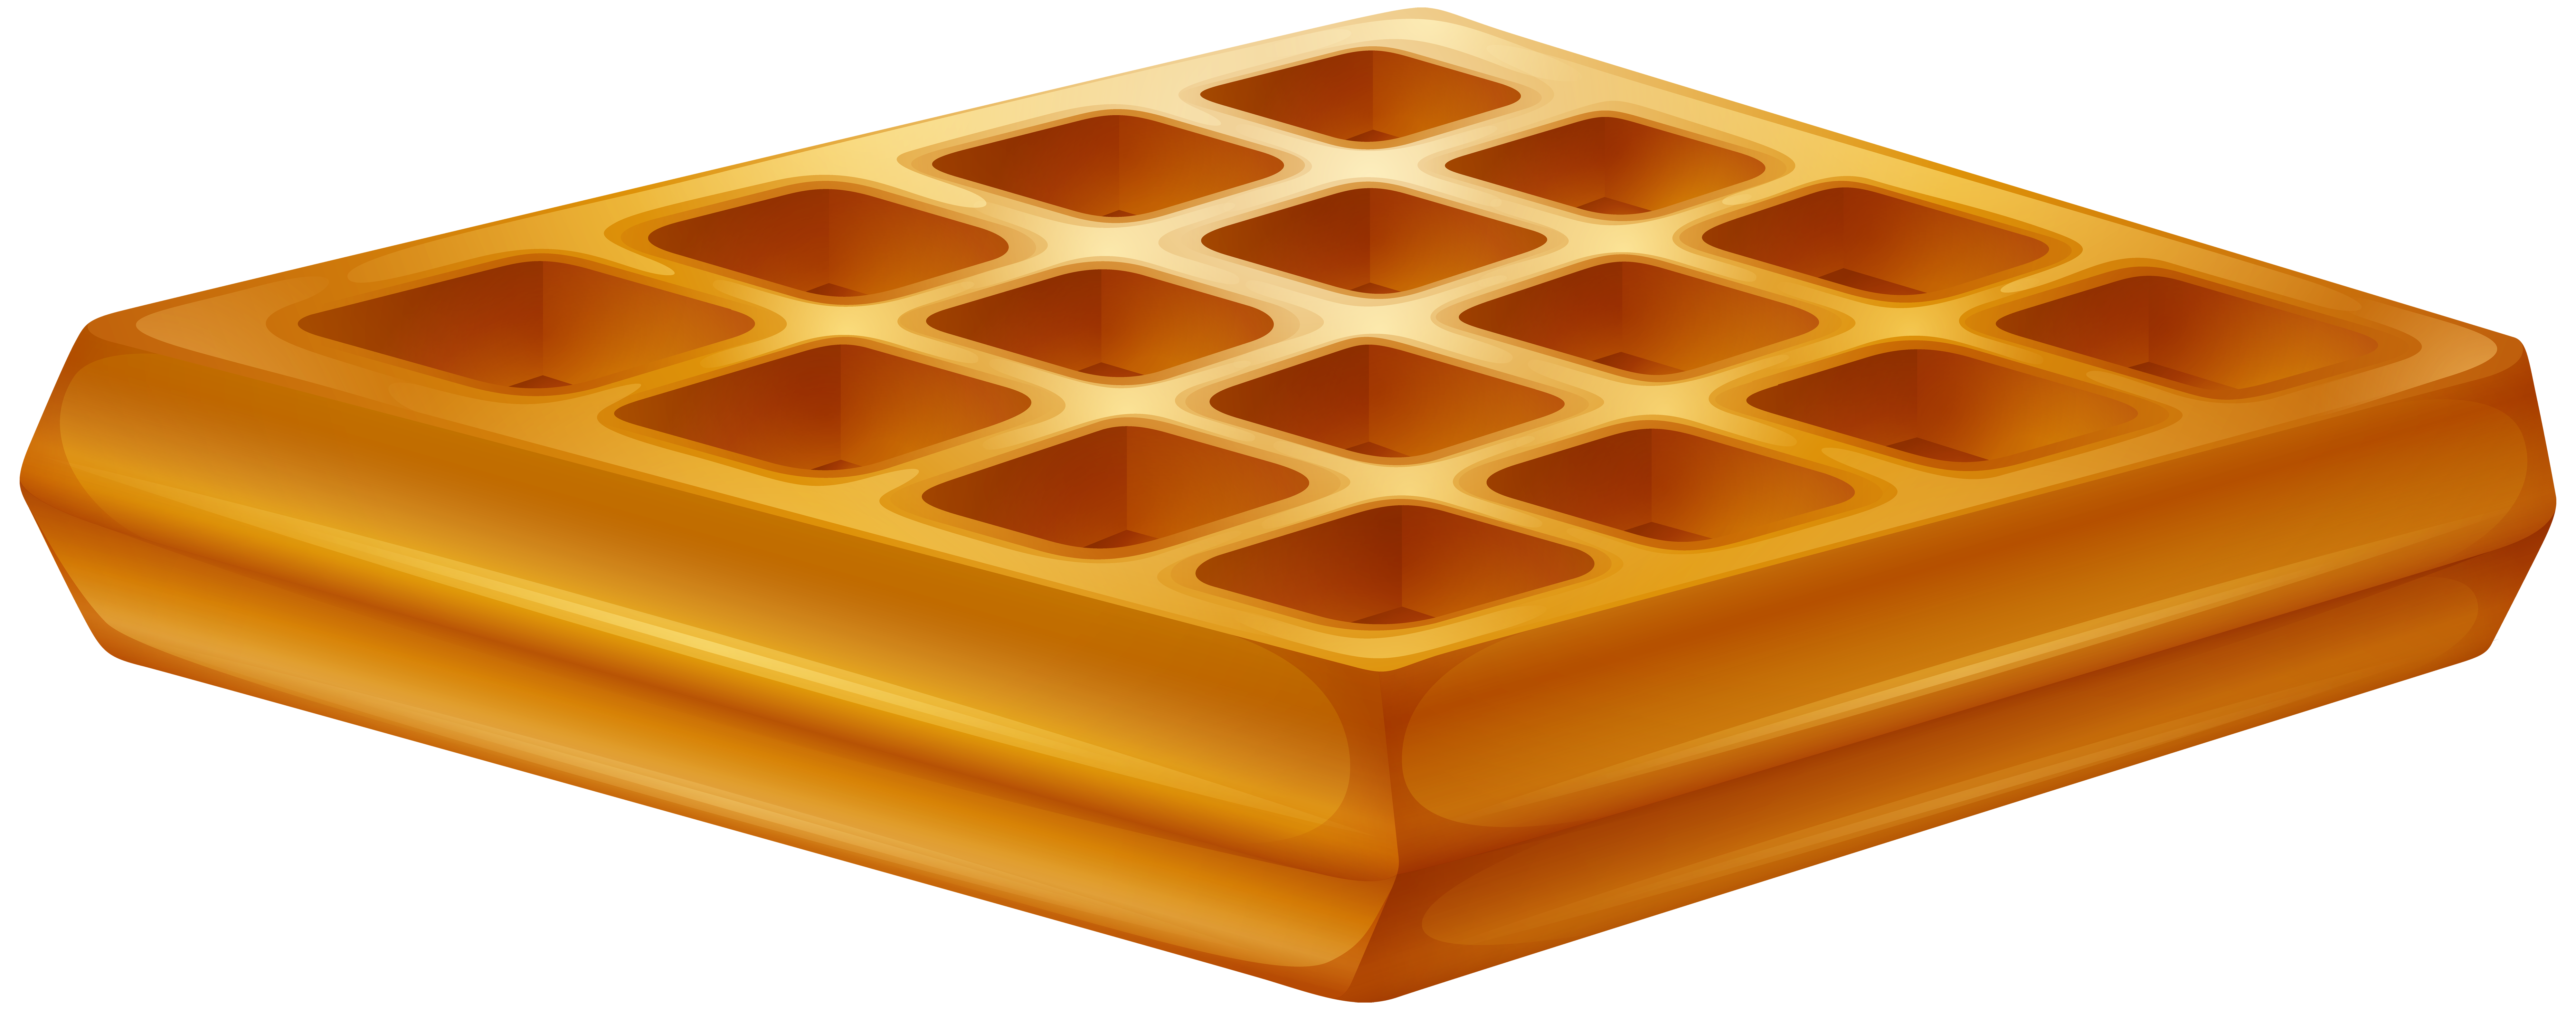 Square clipart clip art. Waffle png best web